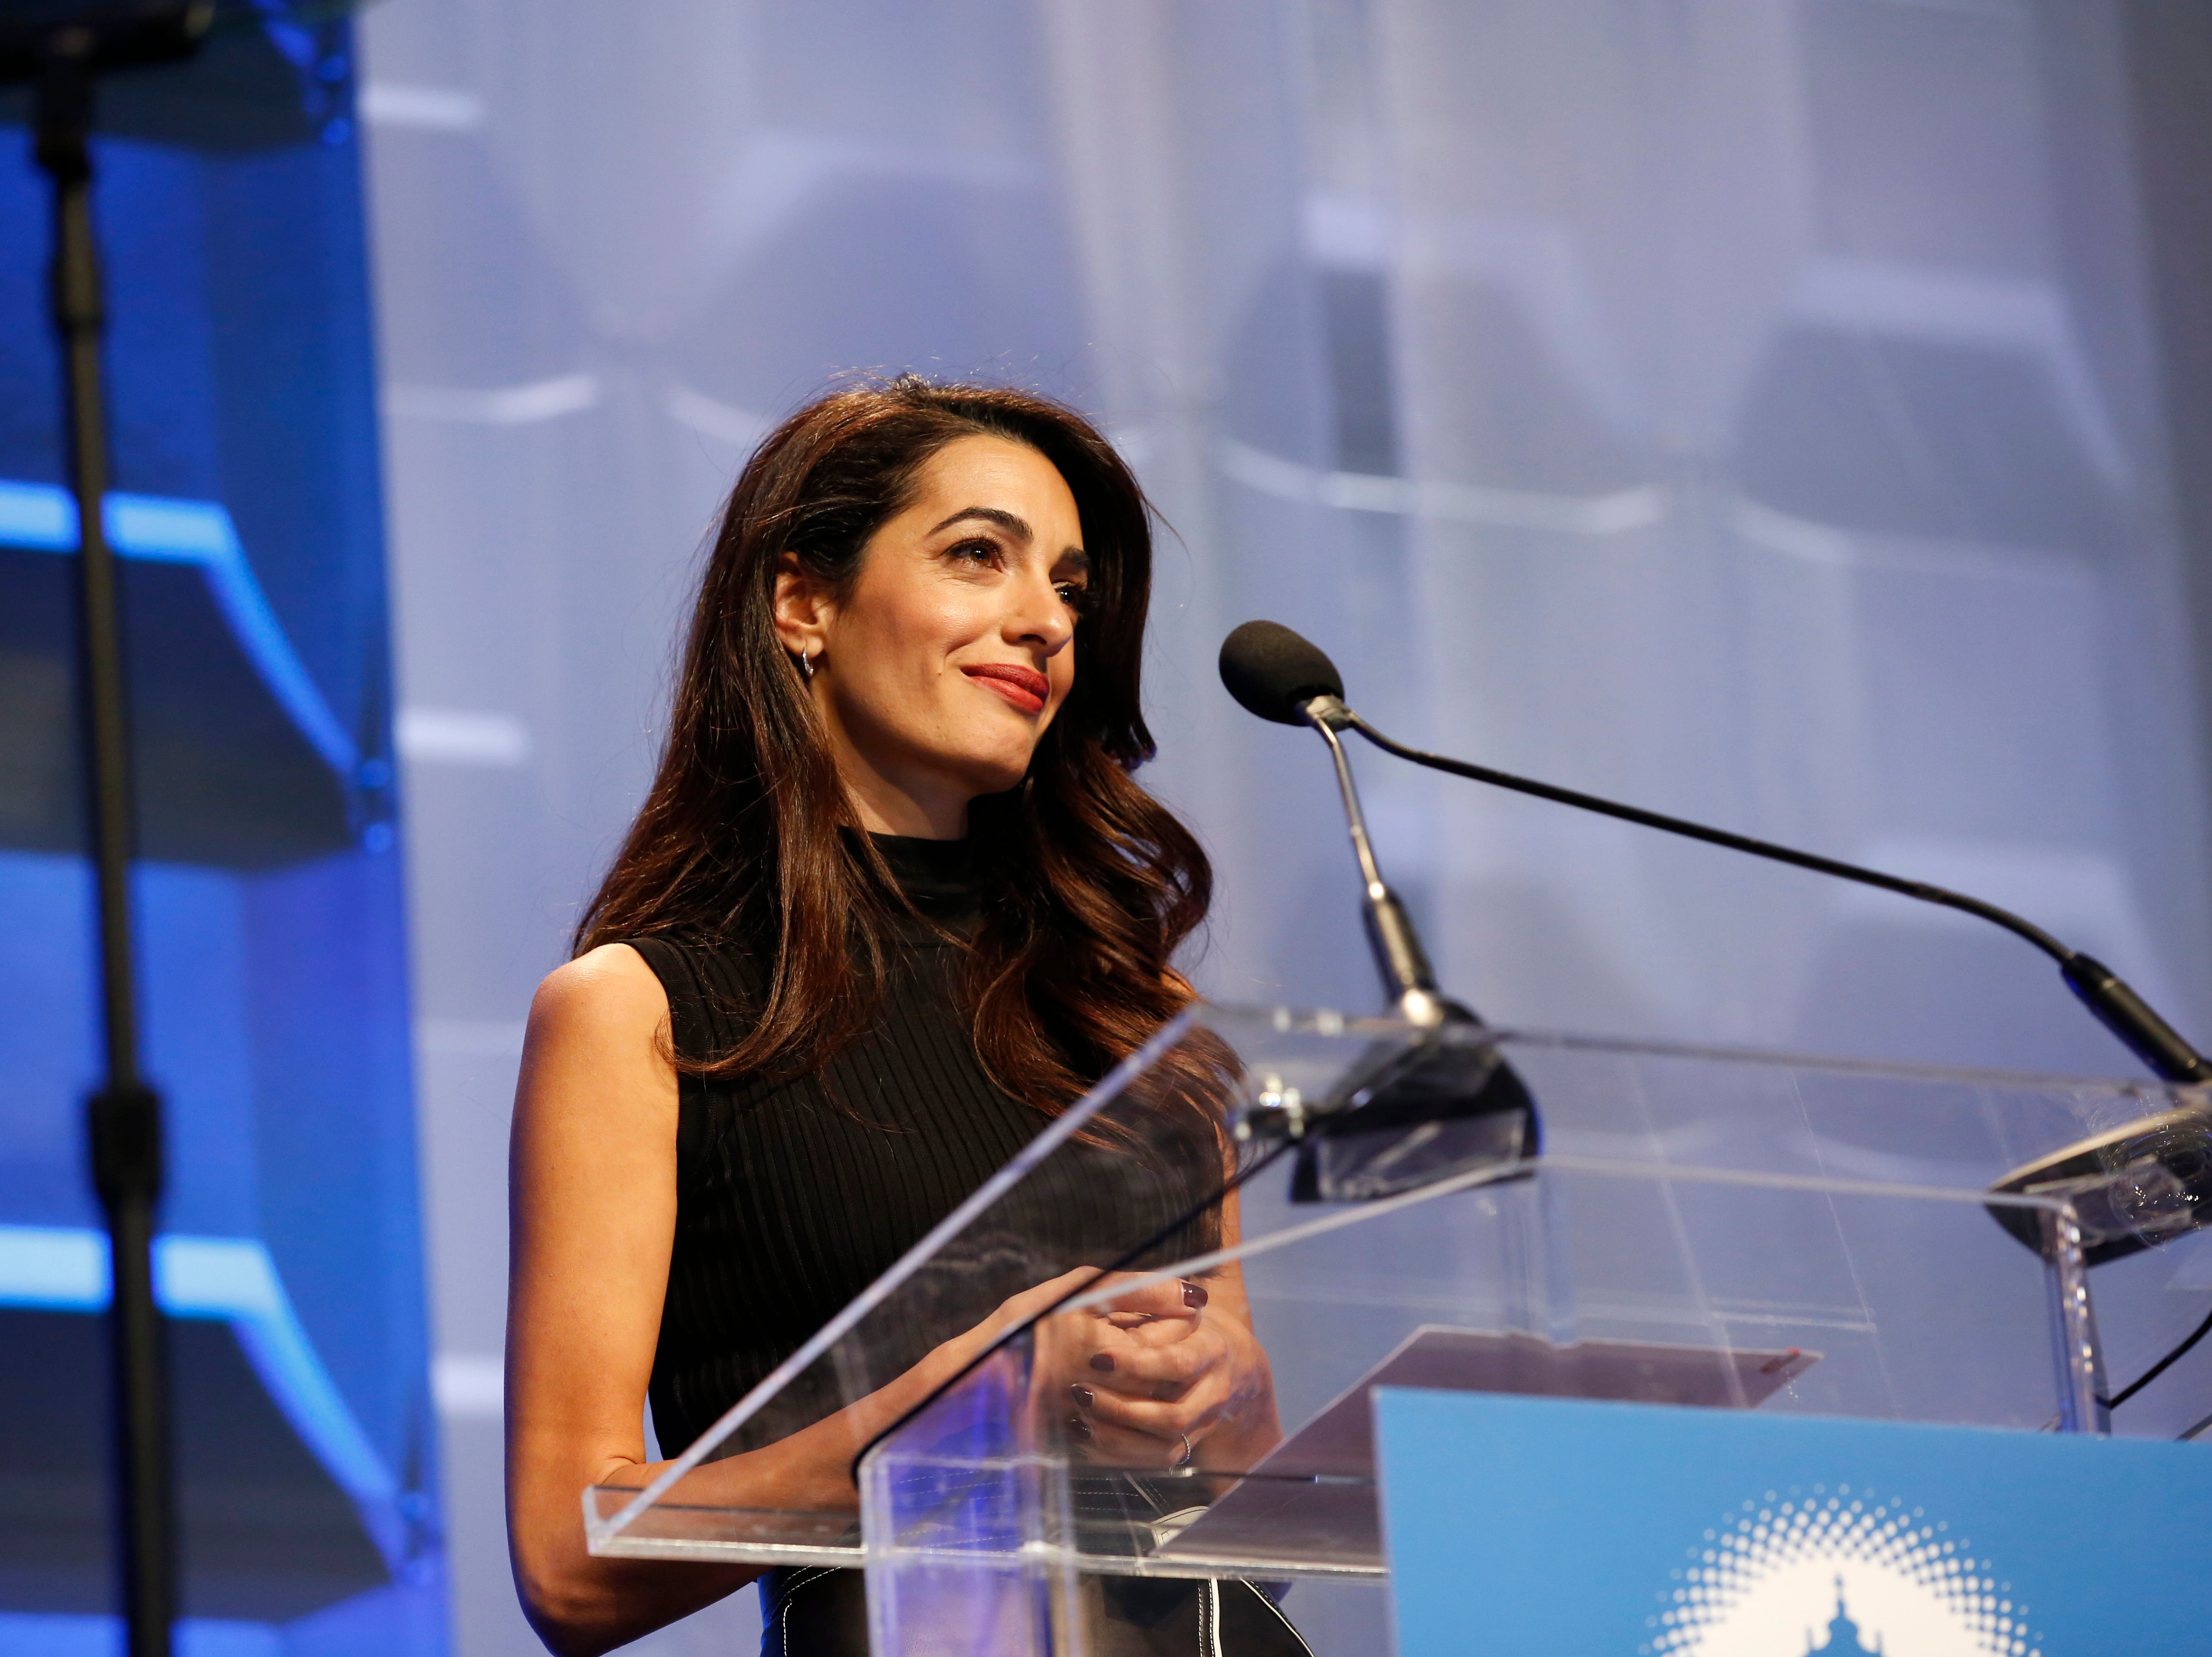 BOSTON, MA - DECEMBER 06:  Human rights lawyer Amal Clooney speaks on stage during 2018 Massachusetts Conference For Women at Boston Convention & Exhibition Center on December 6, 2018 in Boston, Massachusetts.  (Photo by Marla Aufmuth/WireImage ) ORG XMIT: 775264173 ORIG FILE ID: 1069138466